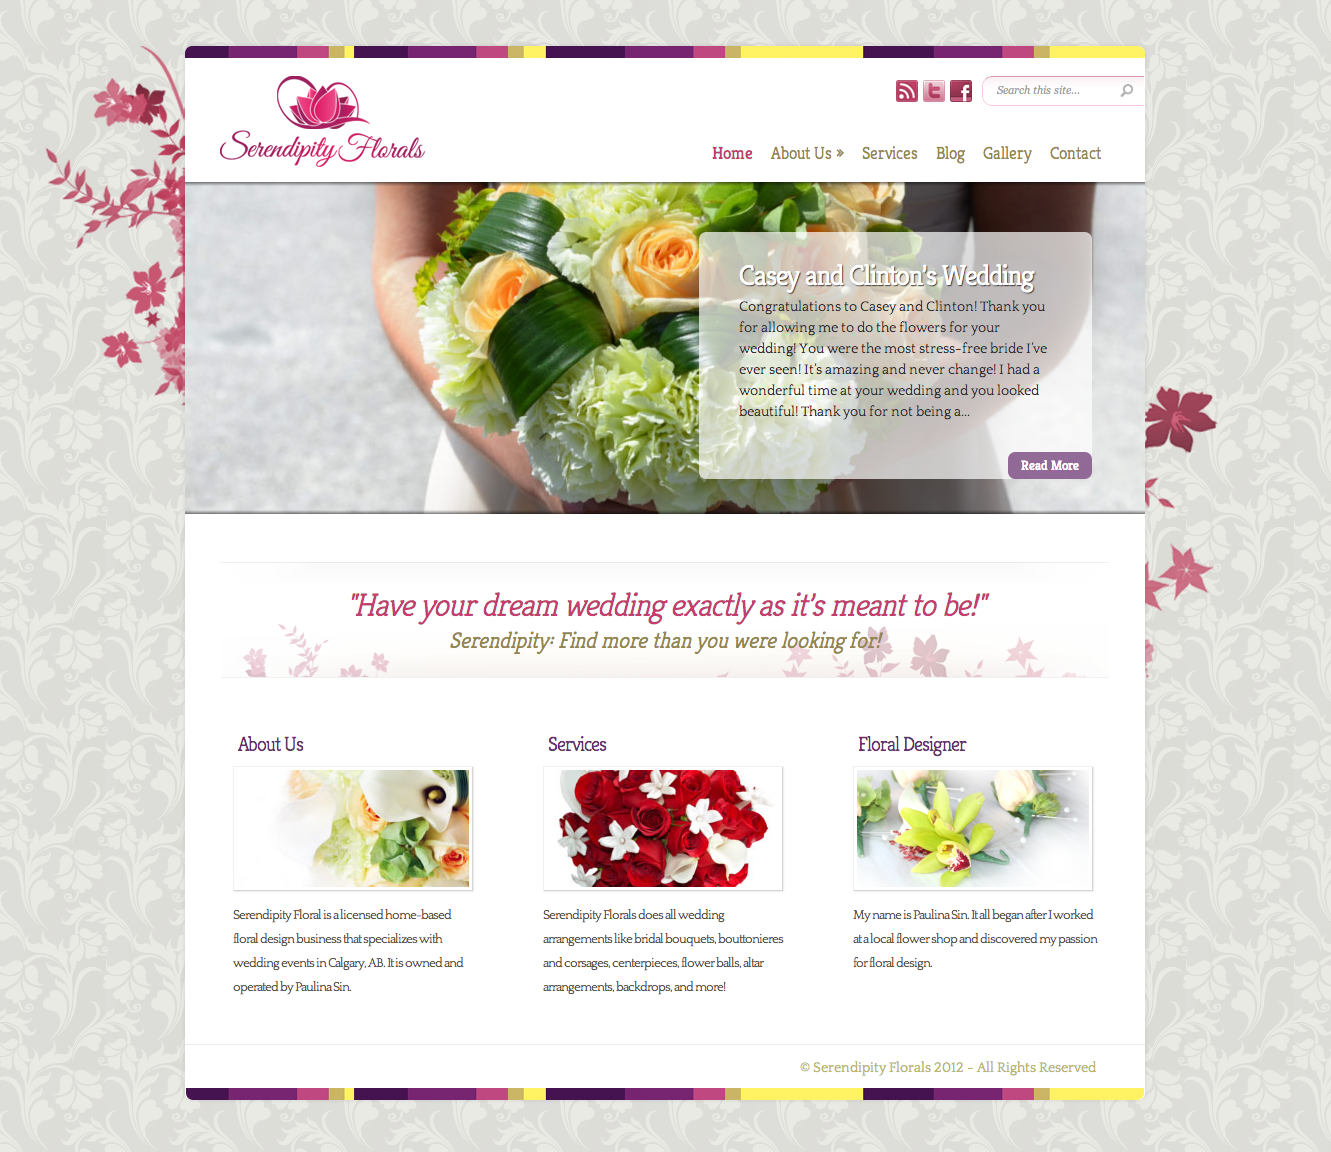 Serendipity Florals Website